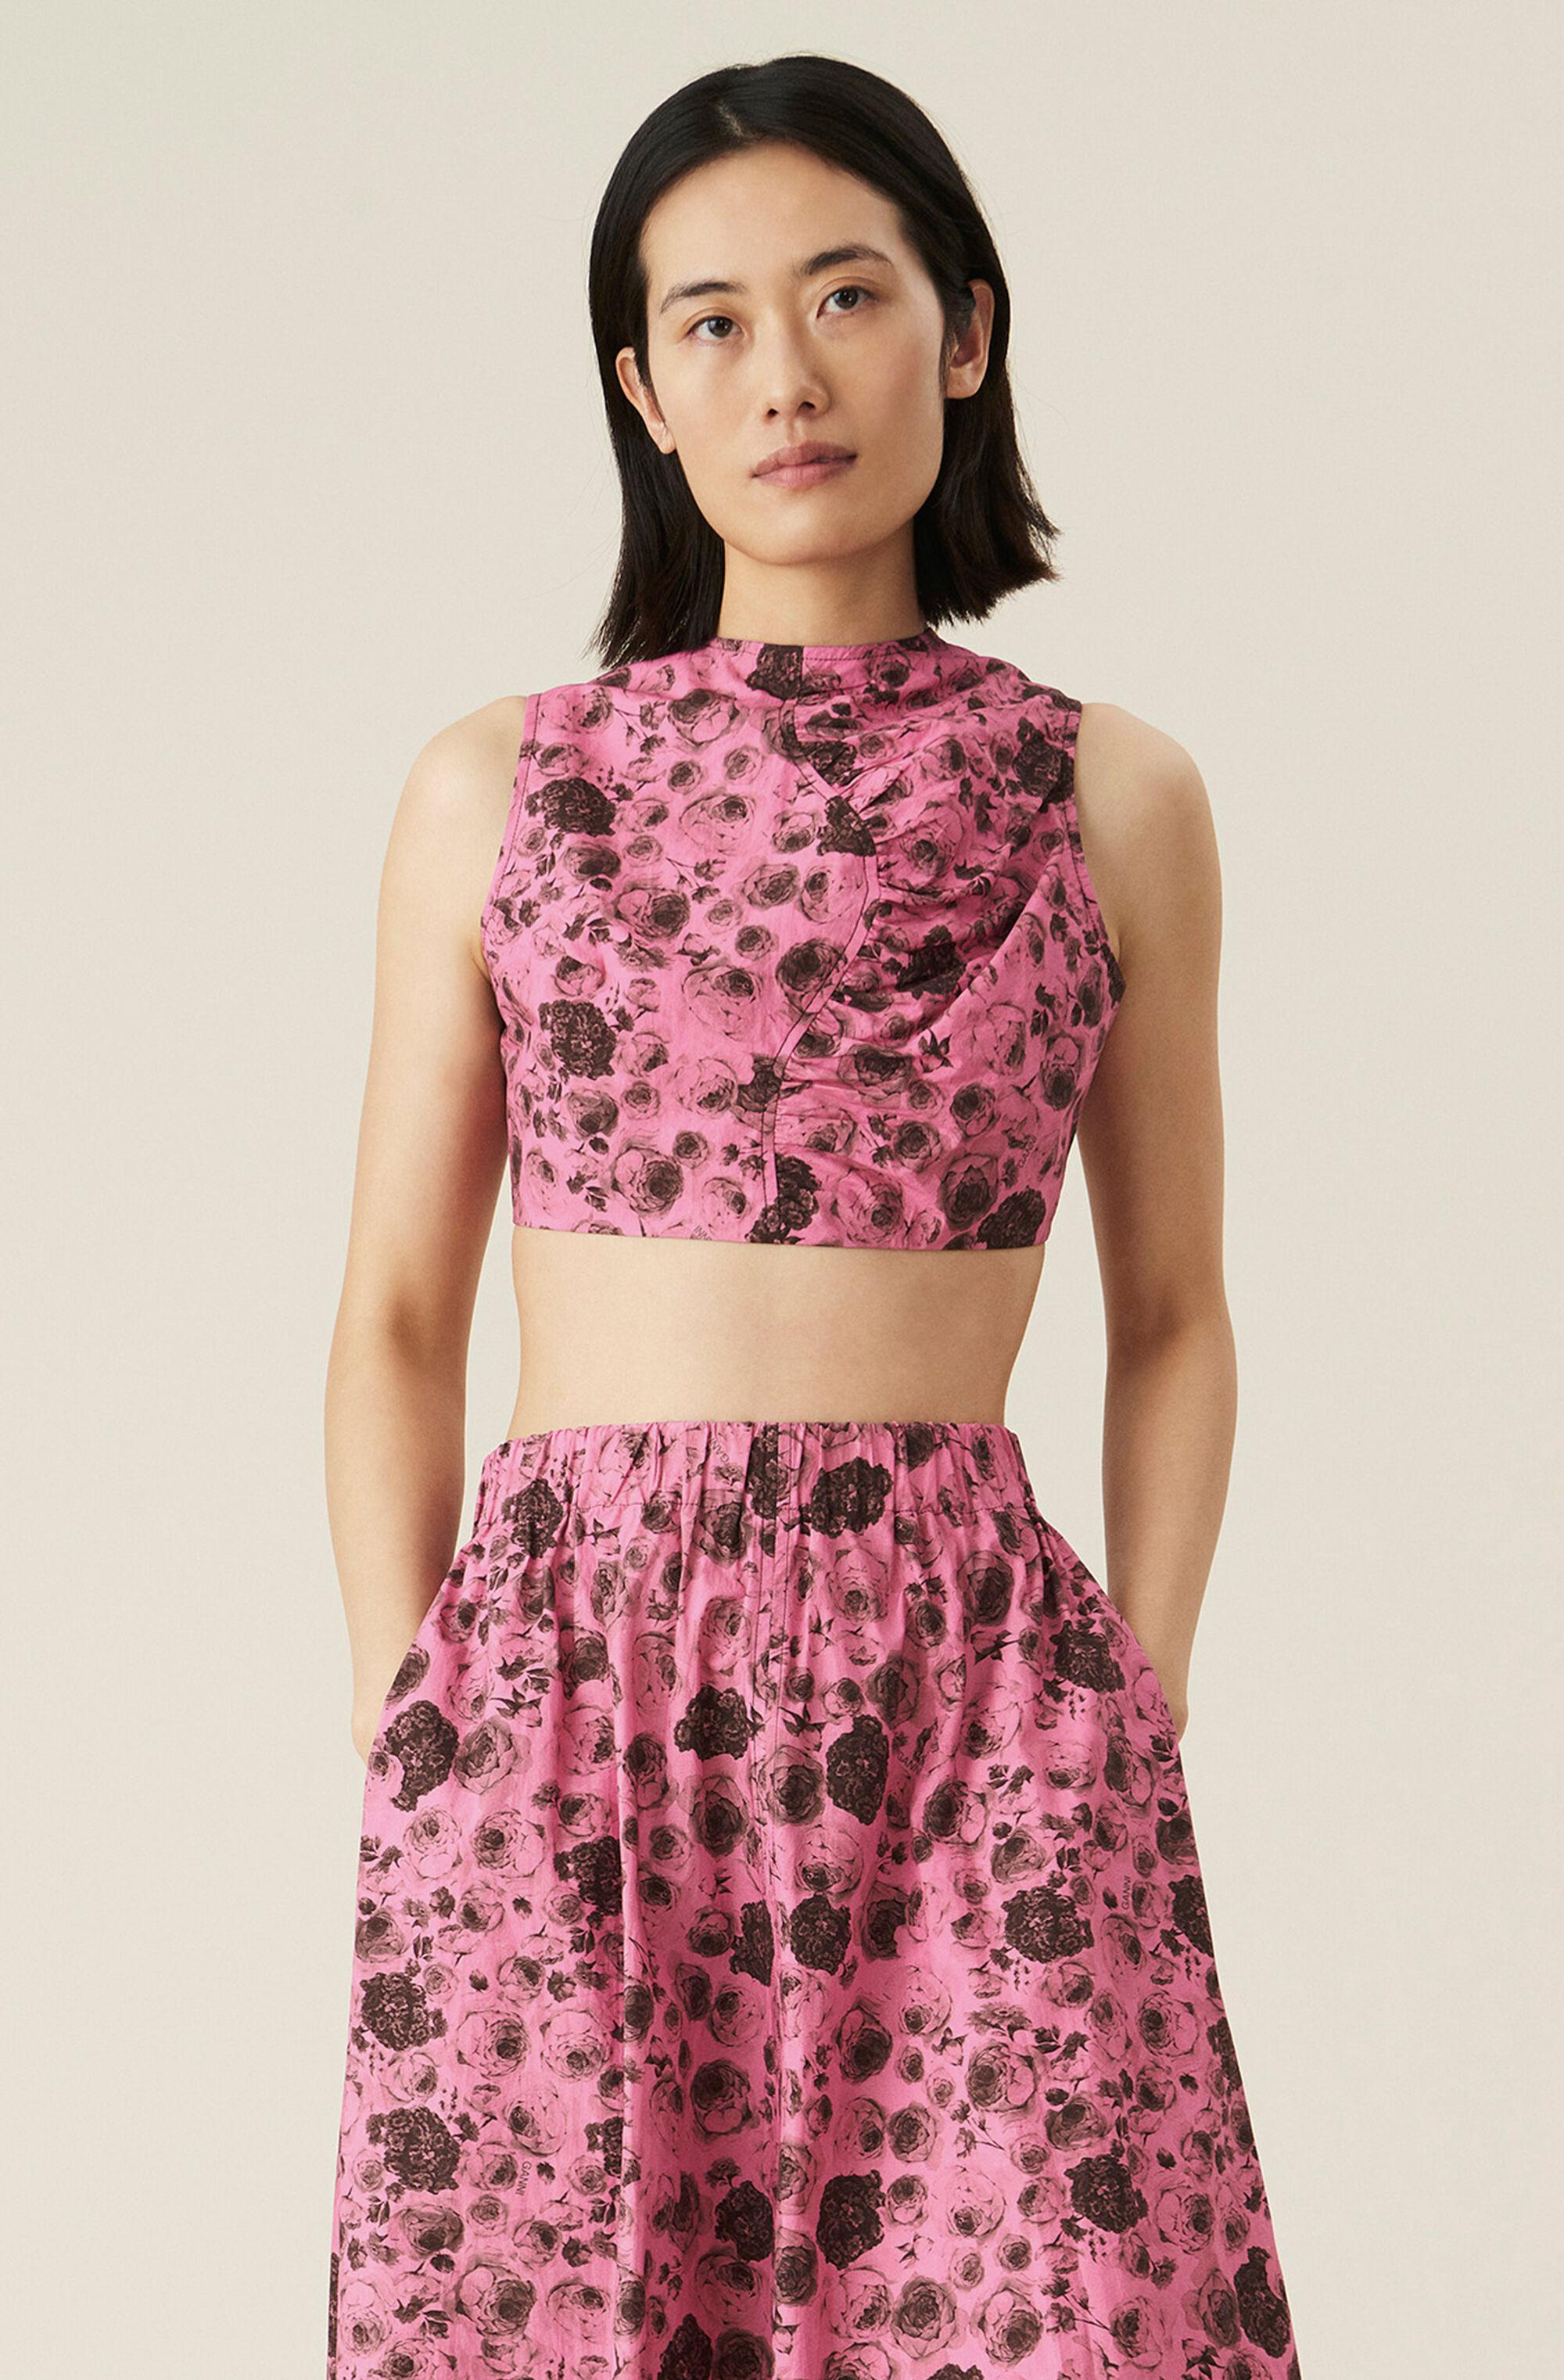 Cotton Poplin Asymmetrical Ruched Lace-Up Crop Top